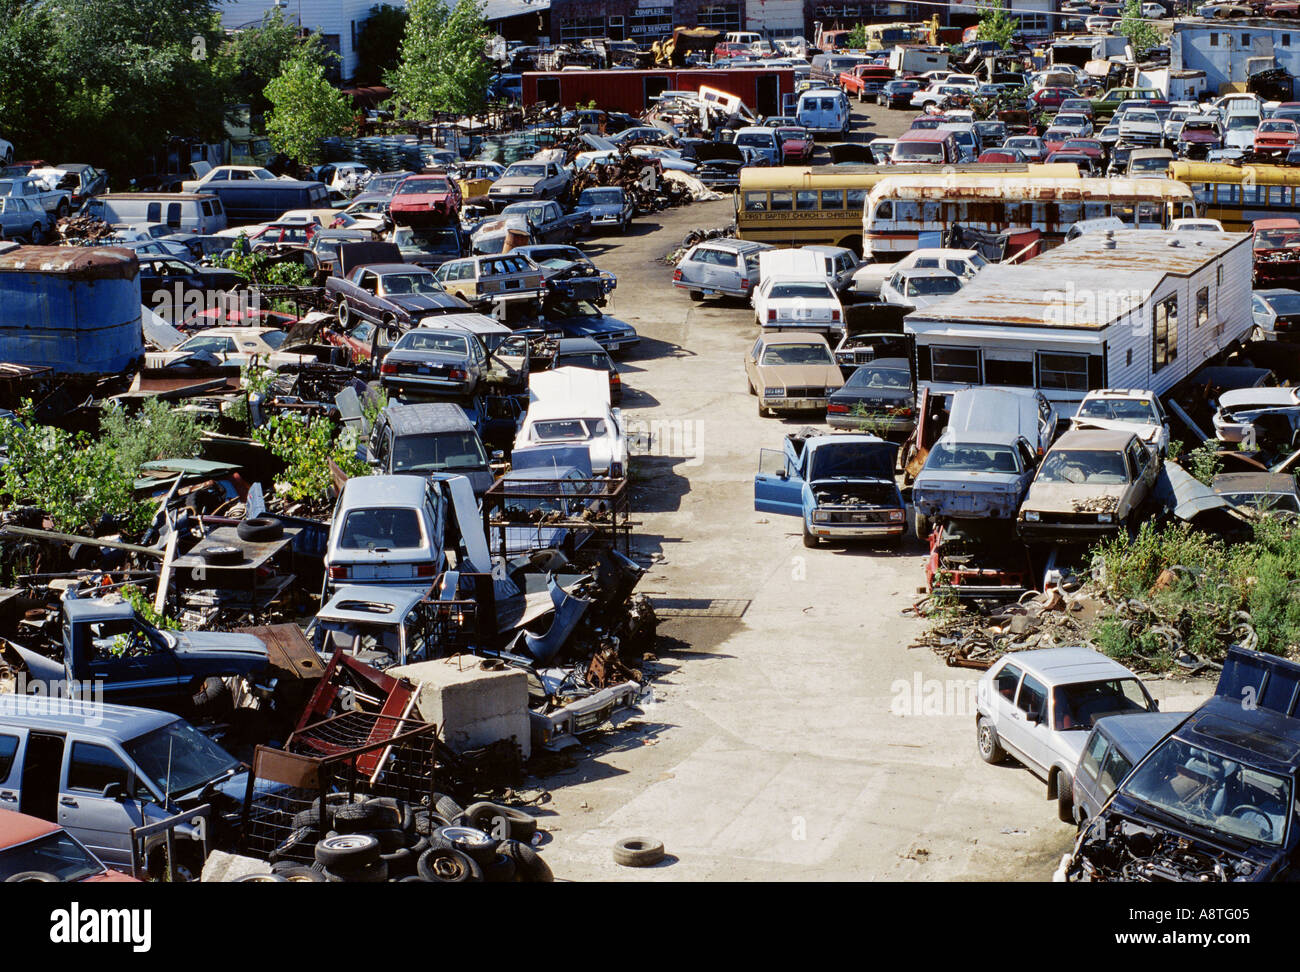 Buy Used Junk Cars Clearwater